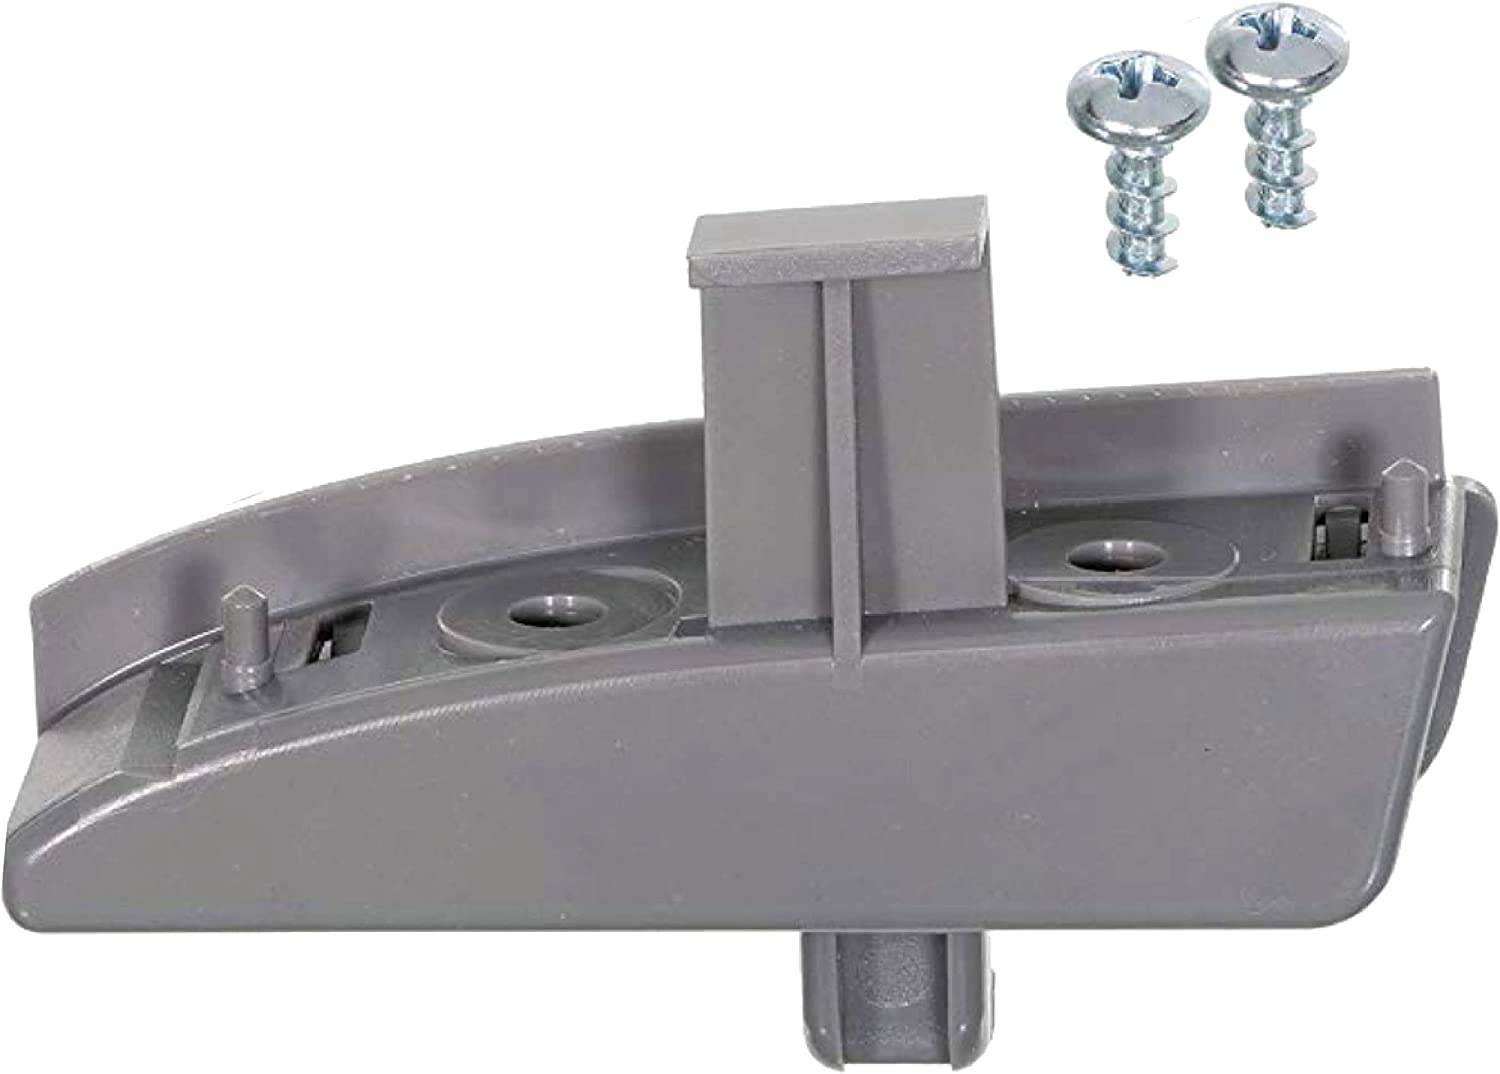 Gray EcoAuto Center Console Latch for Toyota Tacoma OEM-58910AD030B0 with Screwdriver /& 2 Screws Included 2005-2012